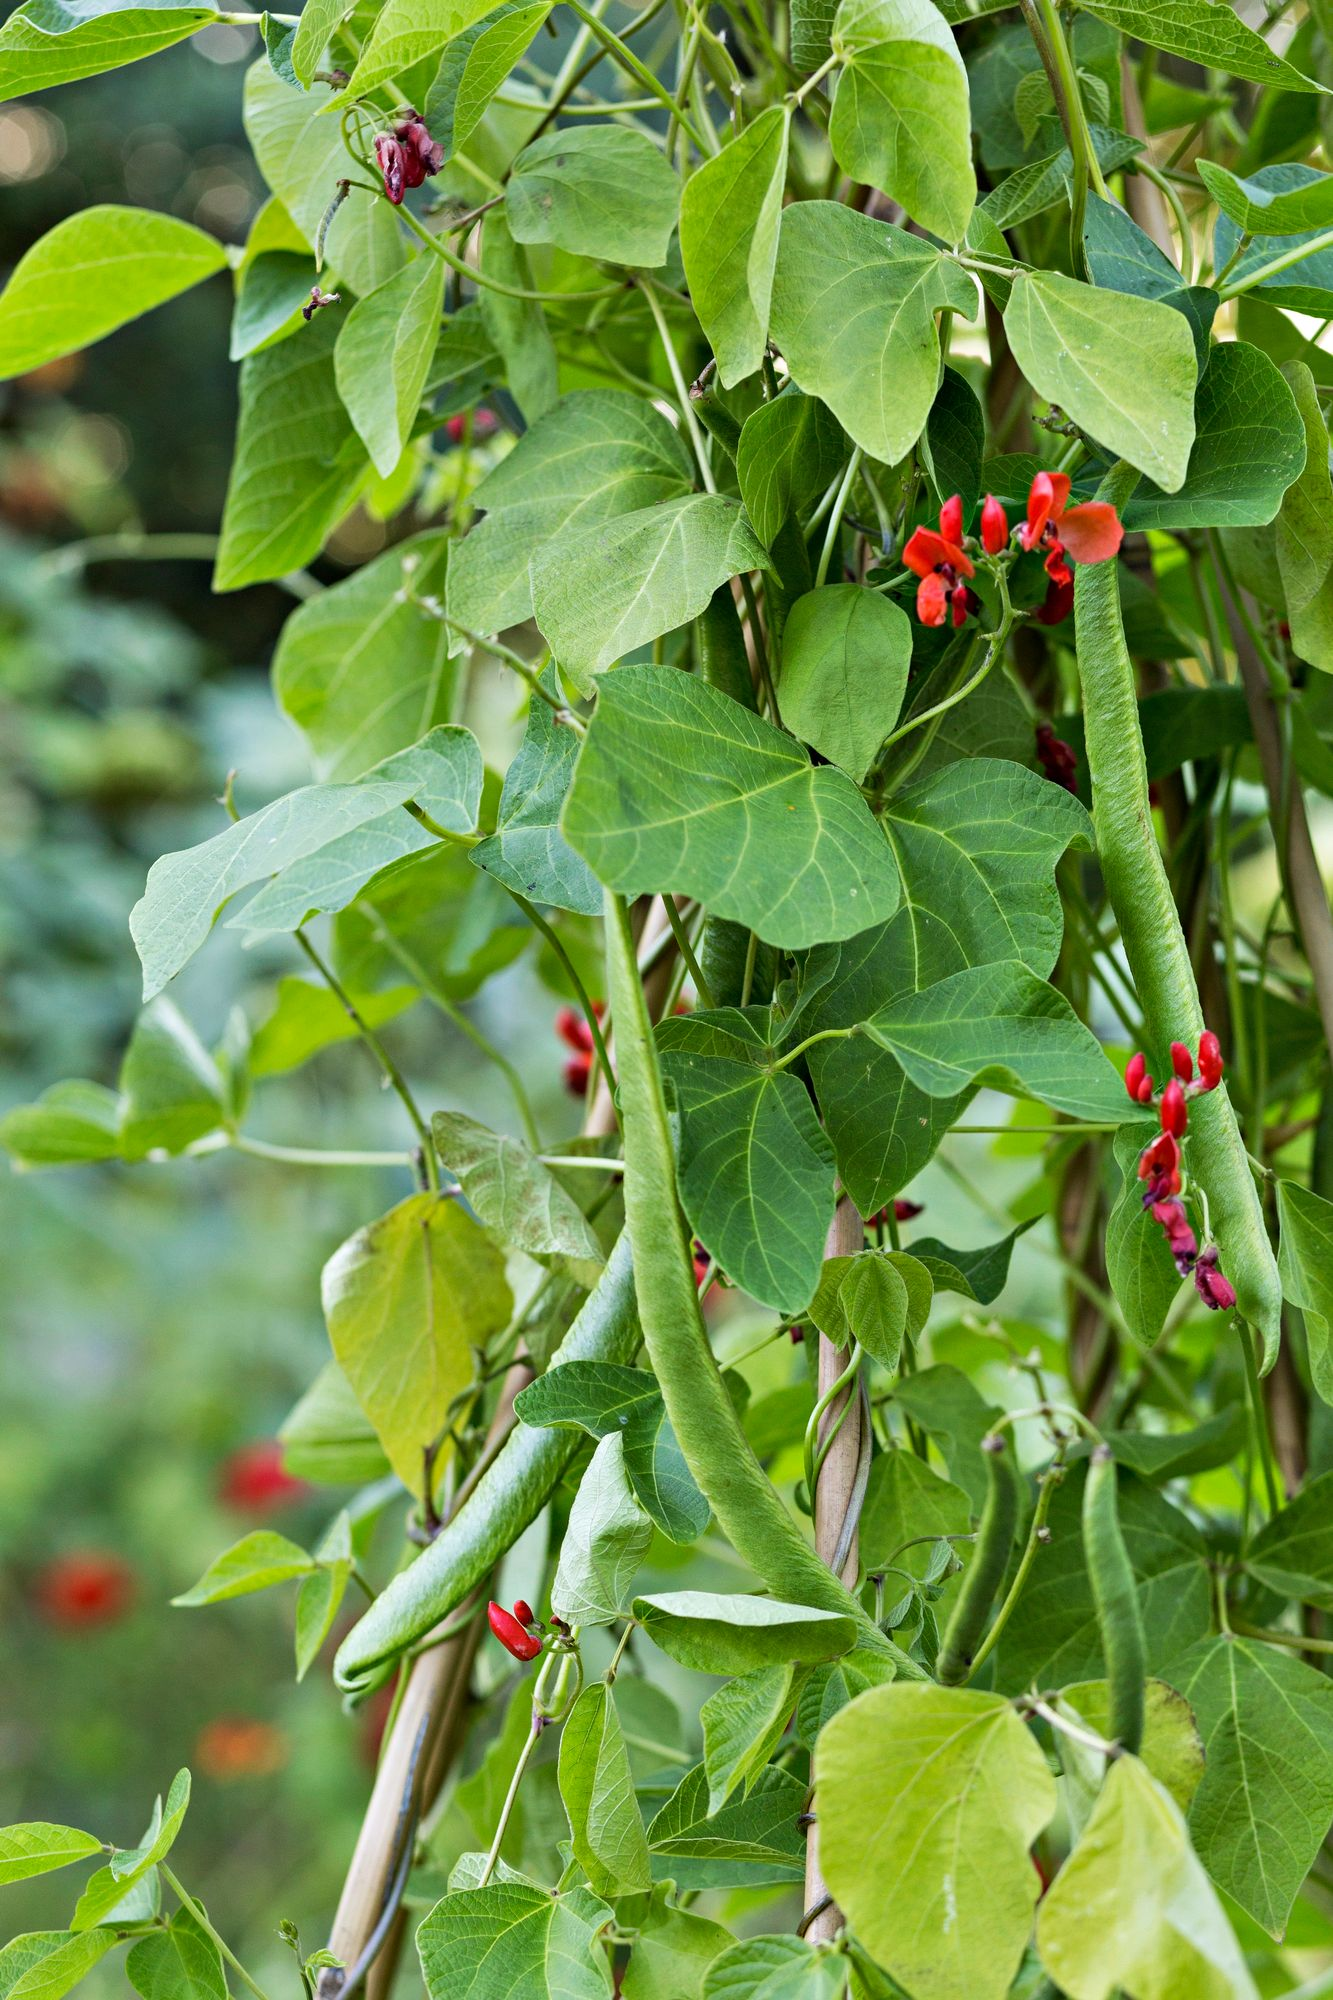 The kitchen garden gets a beautifully blooming eye-catcher from a rose bean.  A plant growing on a vine creates height, floral beauty and edible pods.  Beans at their roots bind atmospheric nitrogen, which also nourishes the earth.